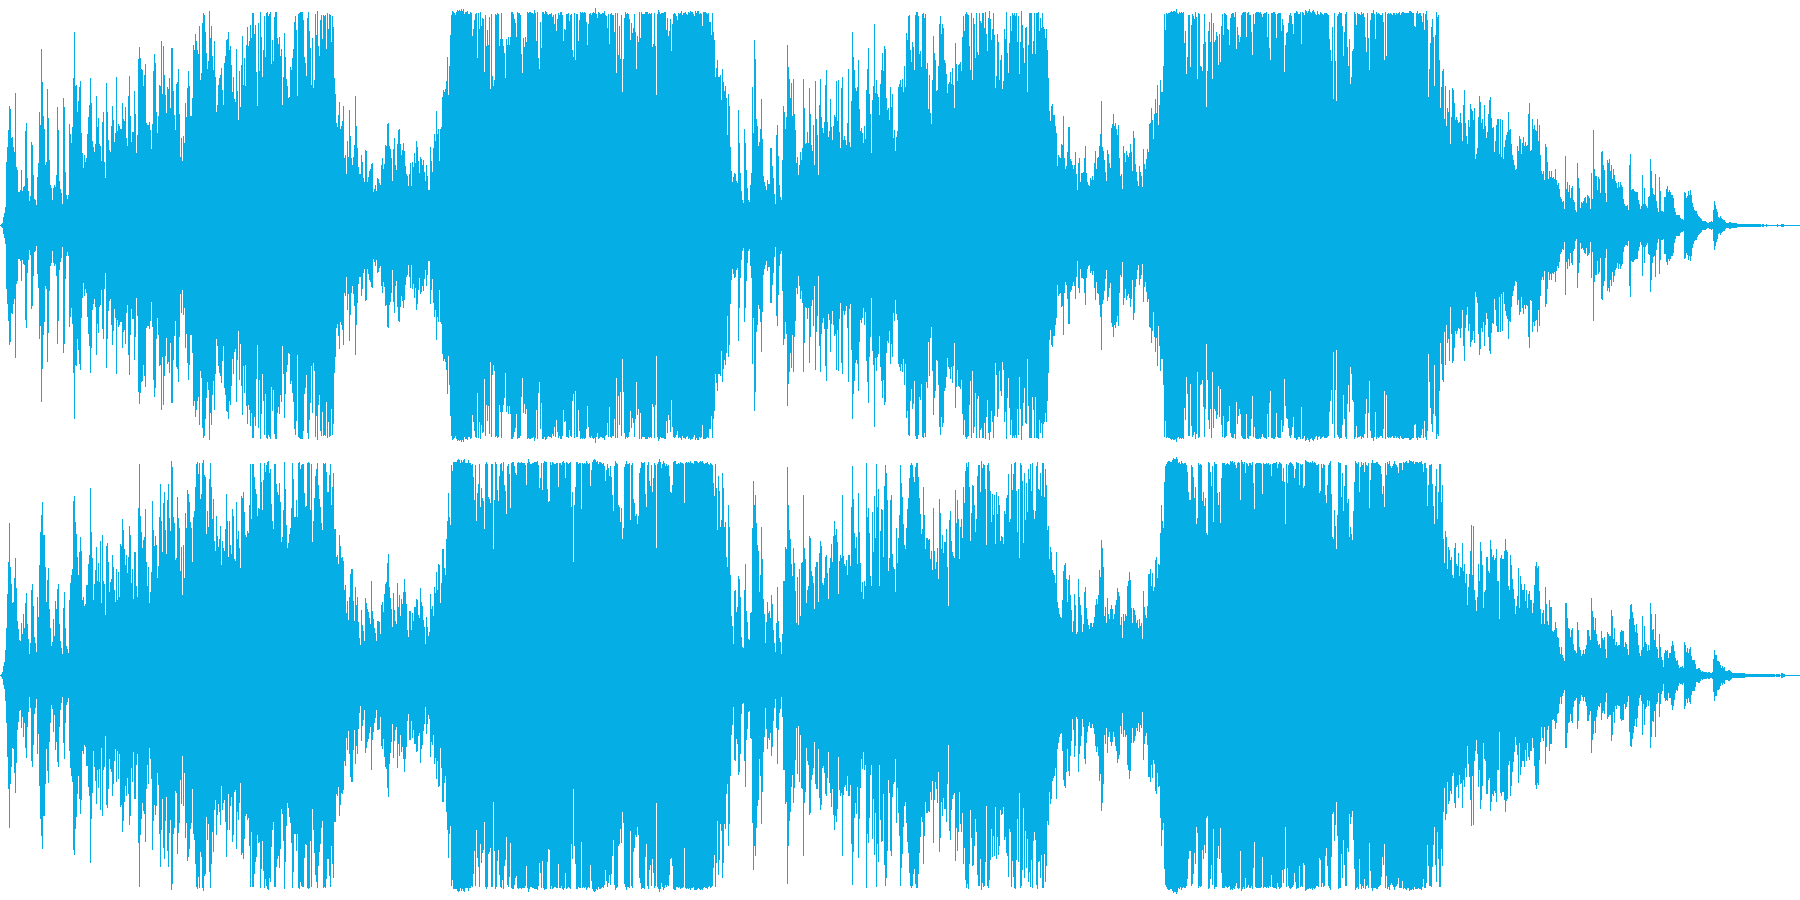 Positive grand pop orchestra's reproduced waveform